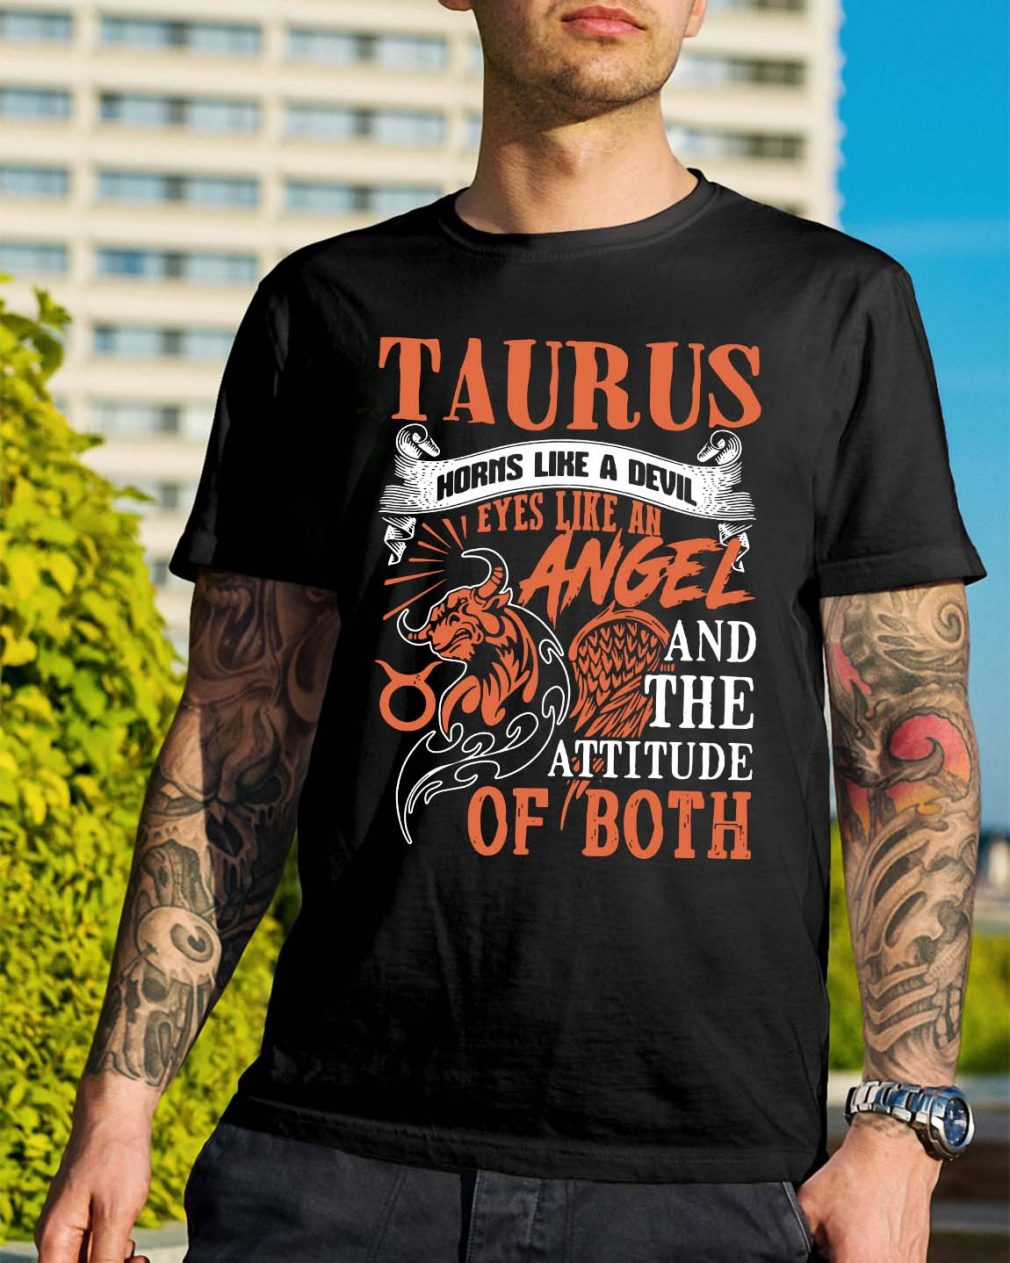 Taurus horns like a devil eyes like an angel and the attitude of both shirt